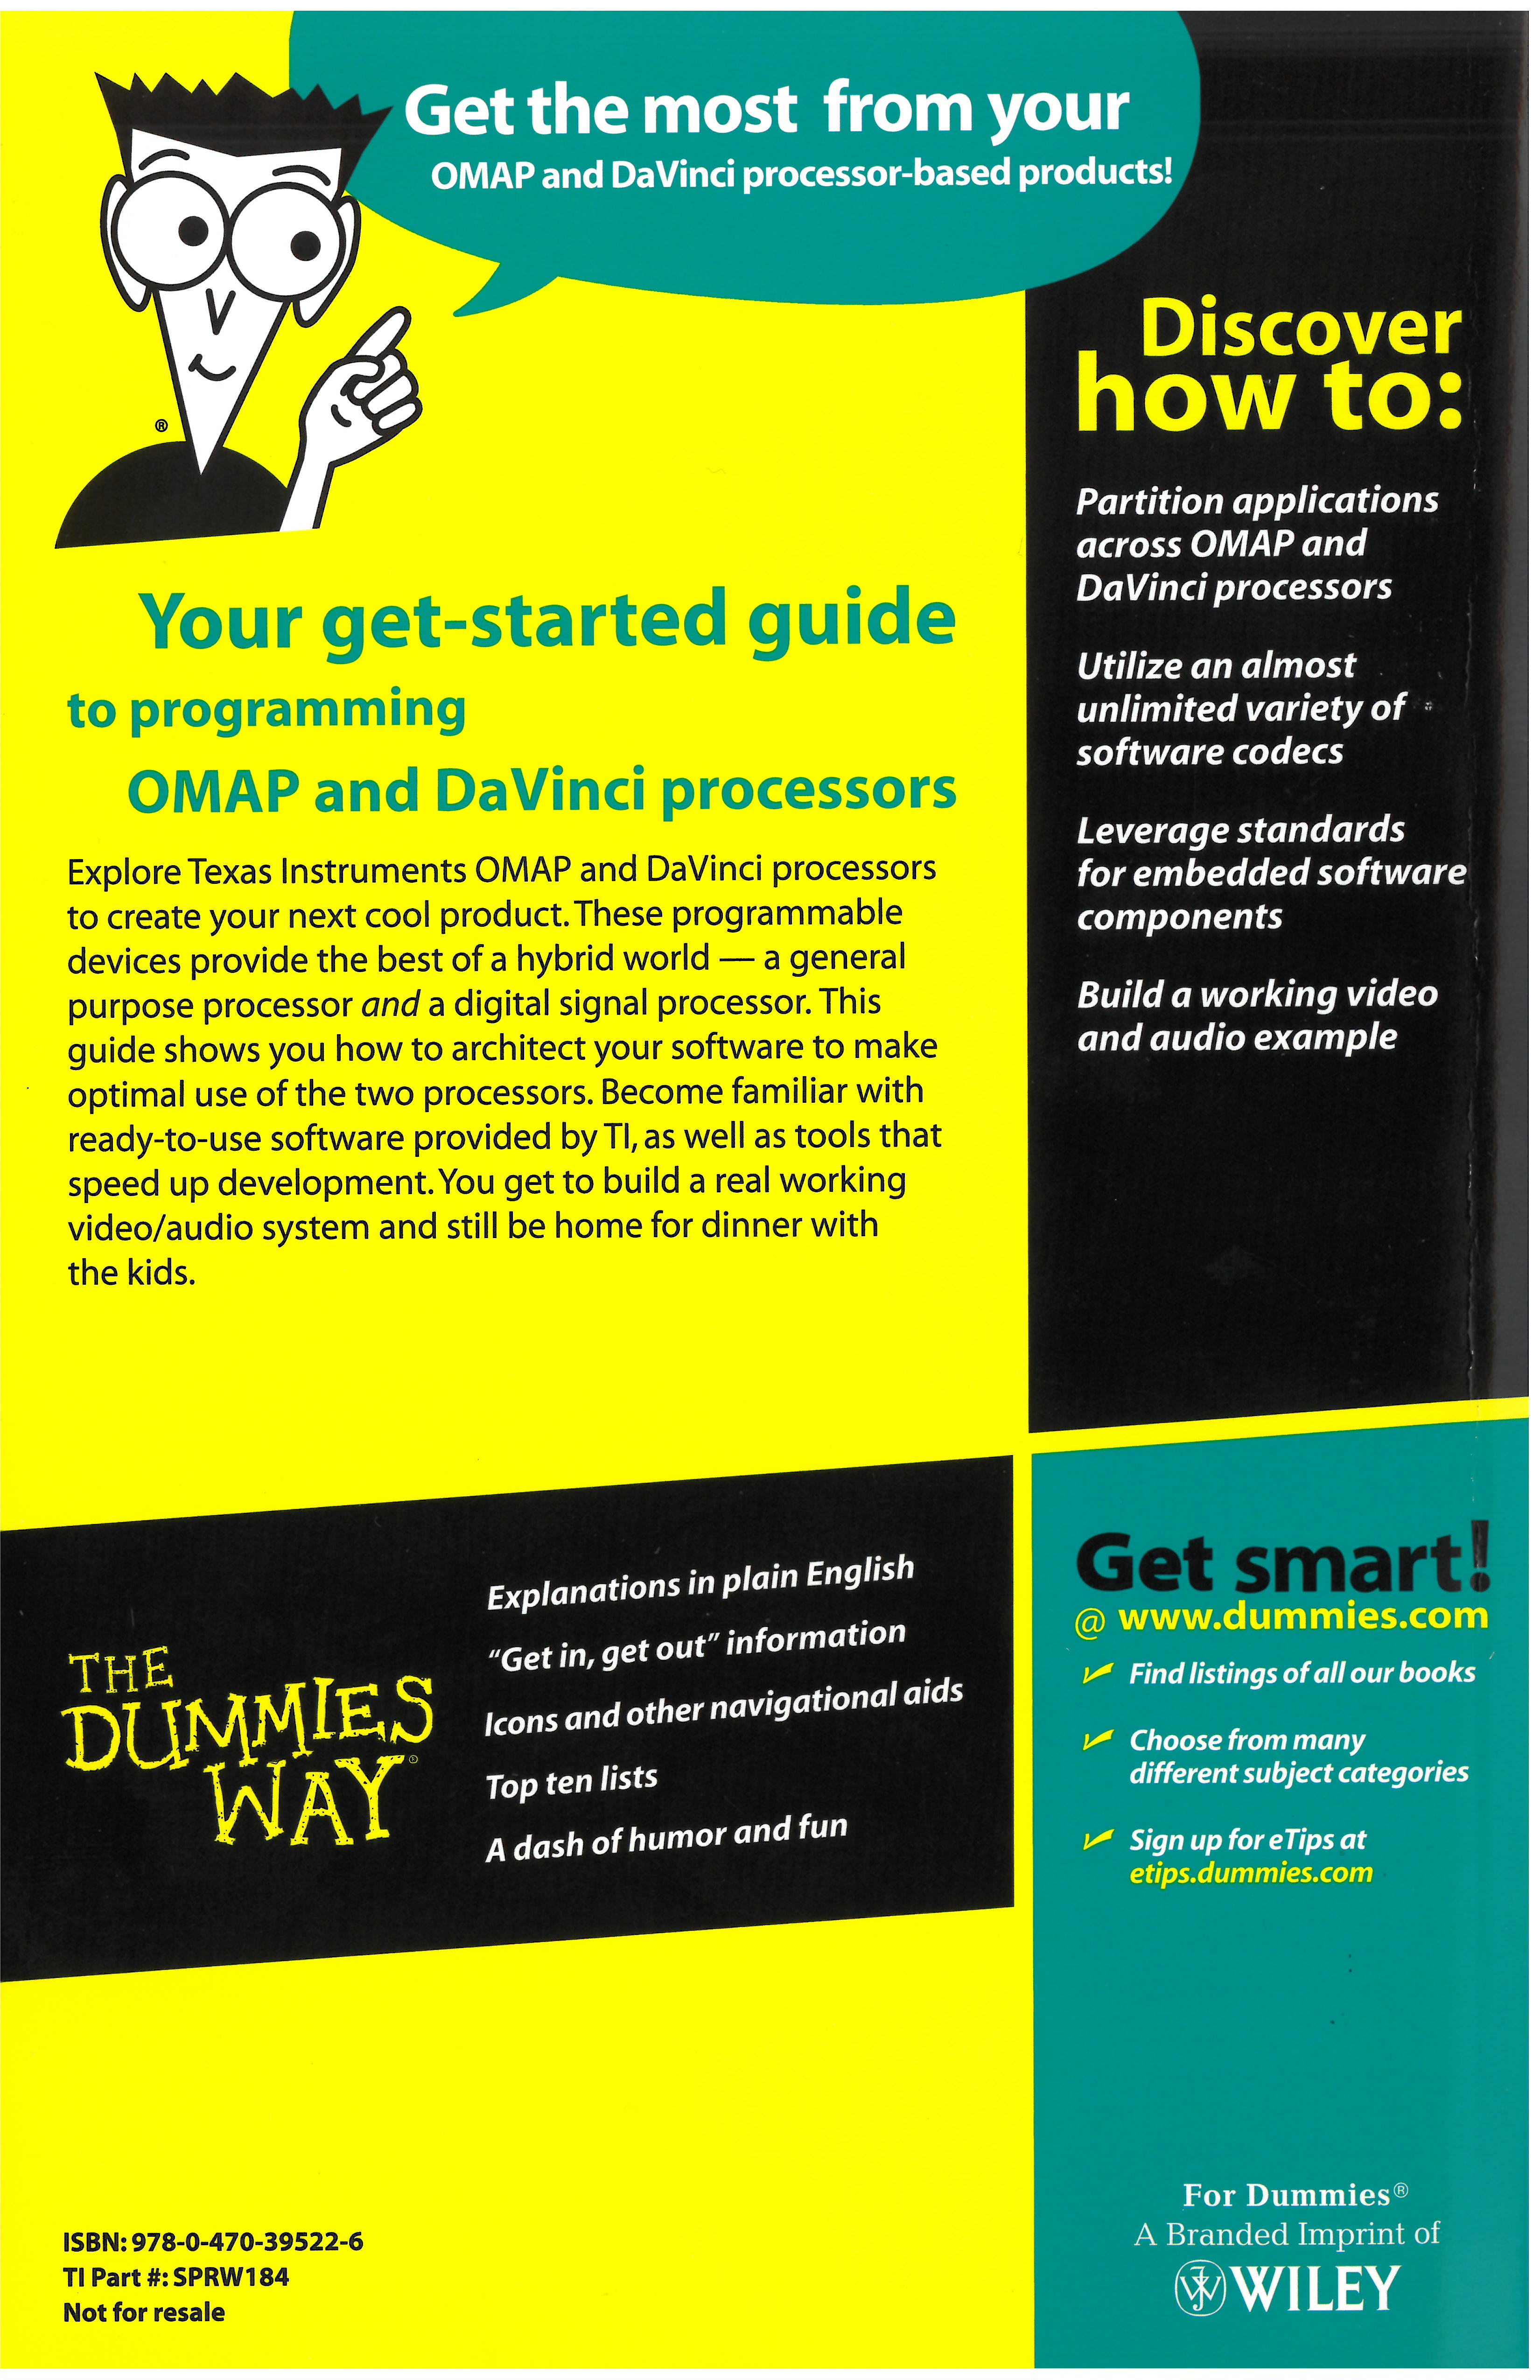 Omap and davinci software for dummies